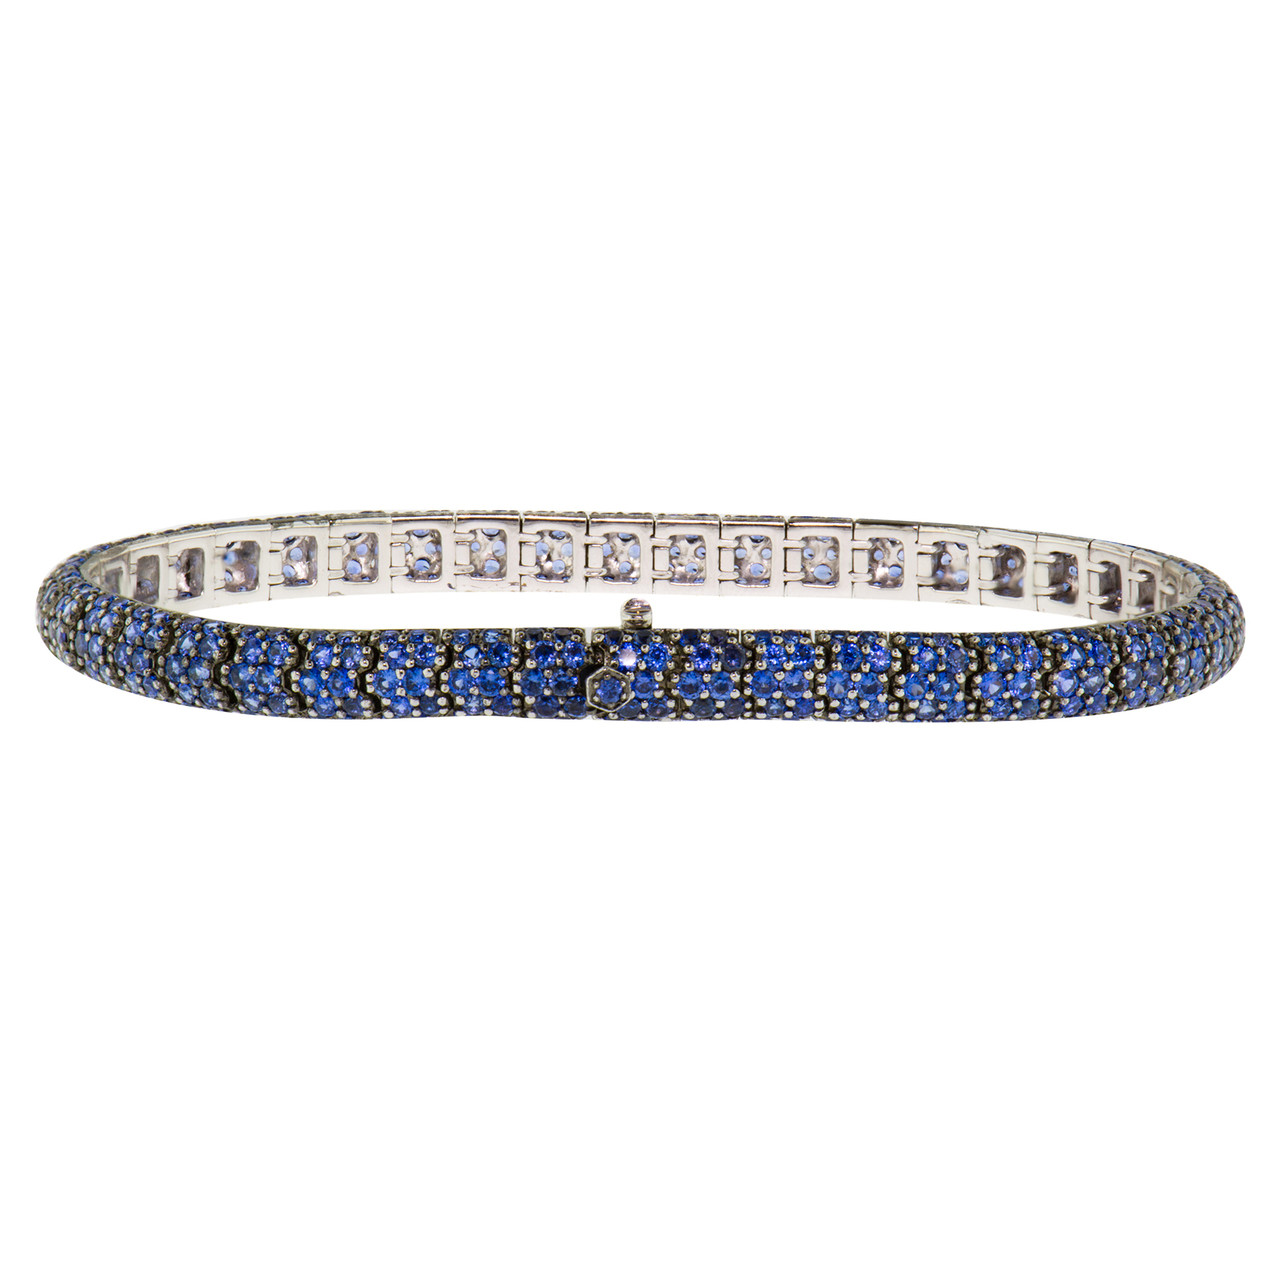 jewelry bracelets platinum peretti hei sapphire color fit bracelet the in yard ed constrain wid with elsa by id fmt sapphires